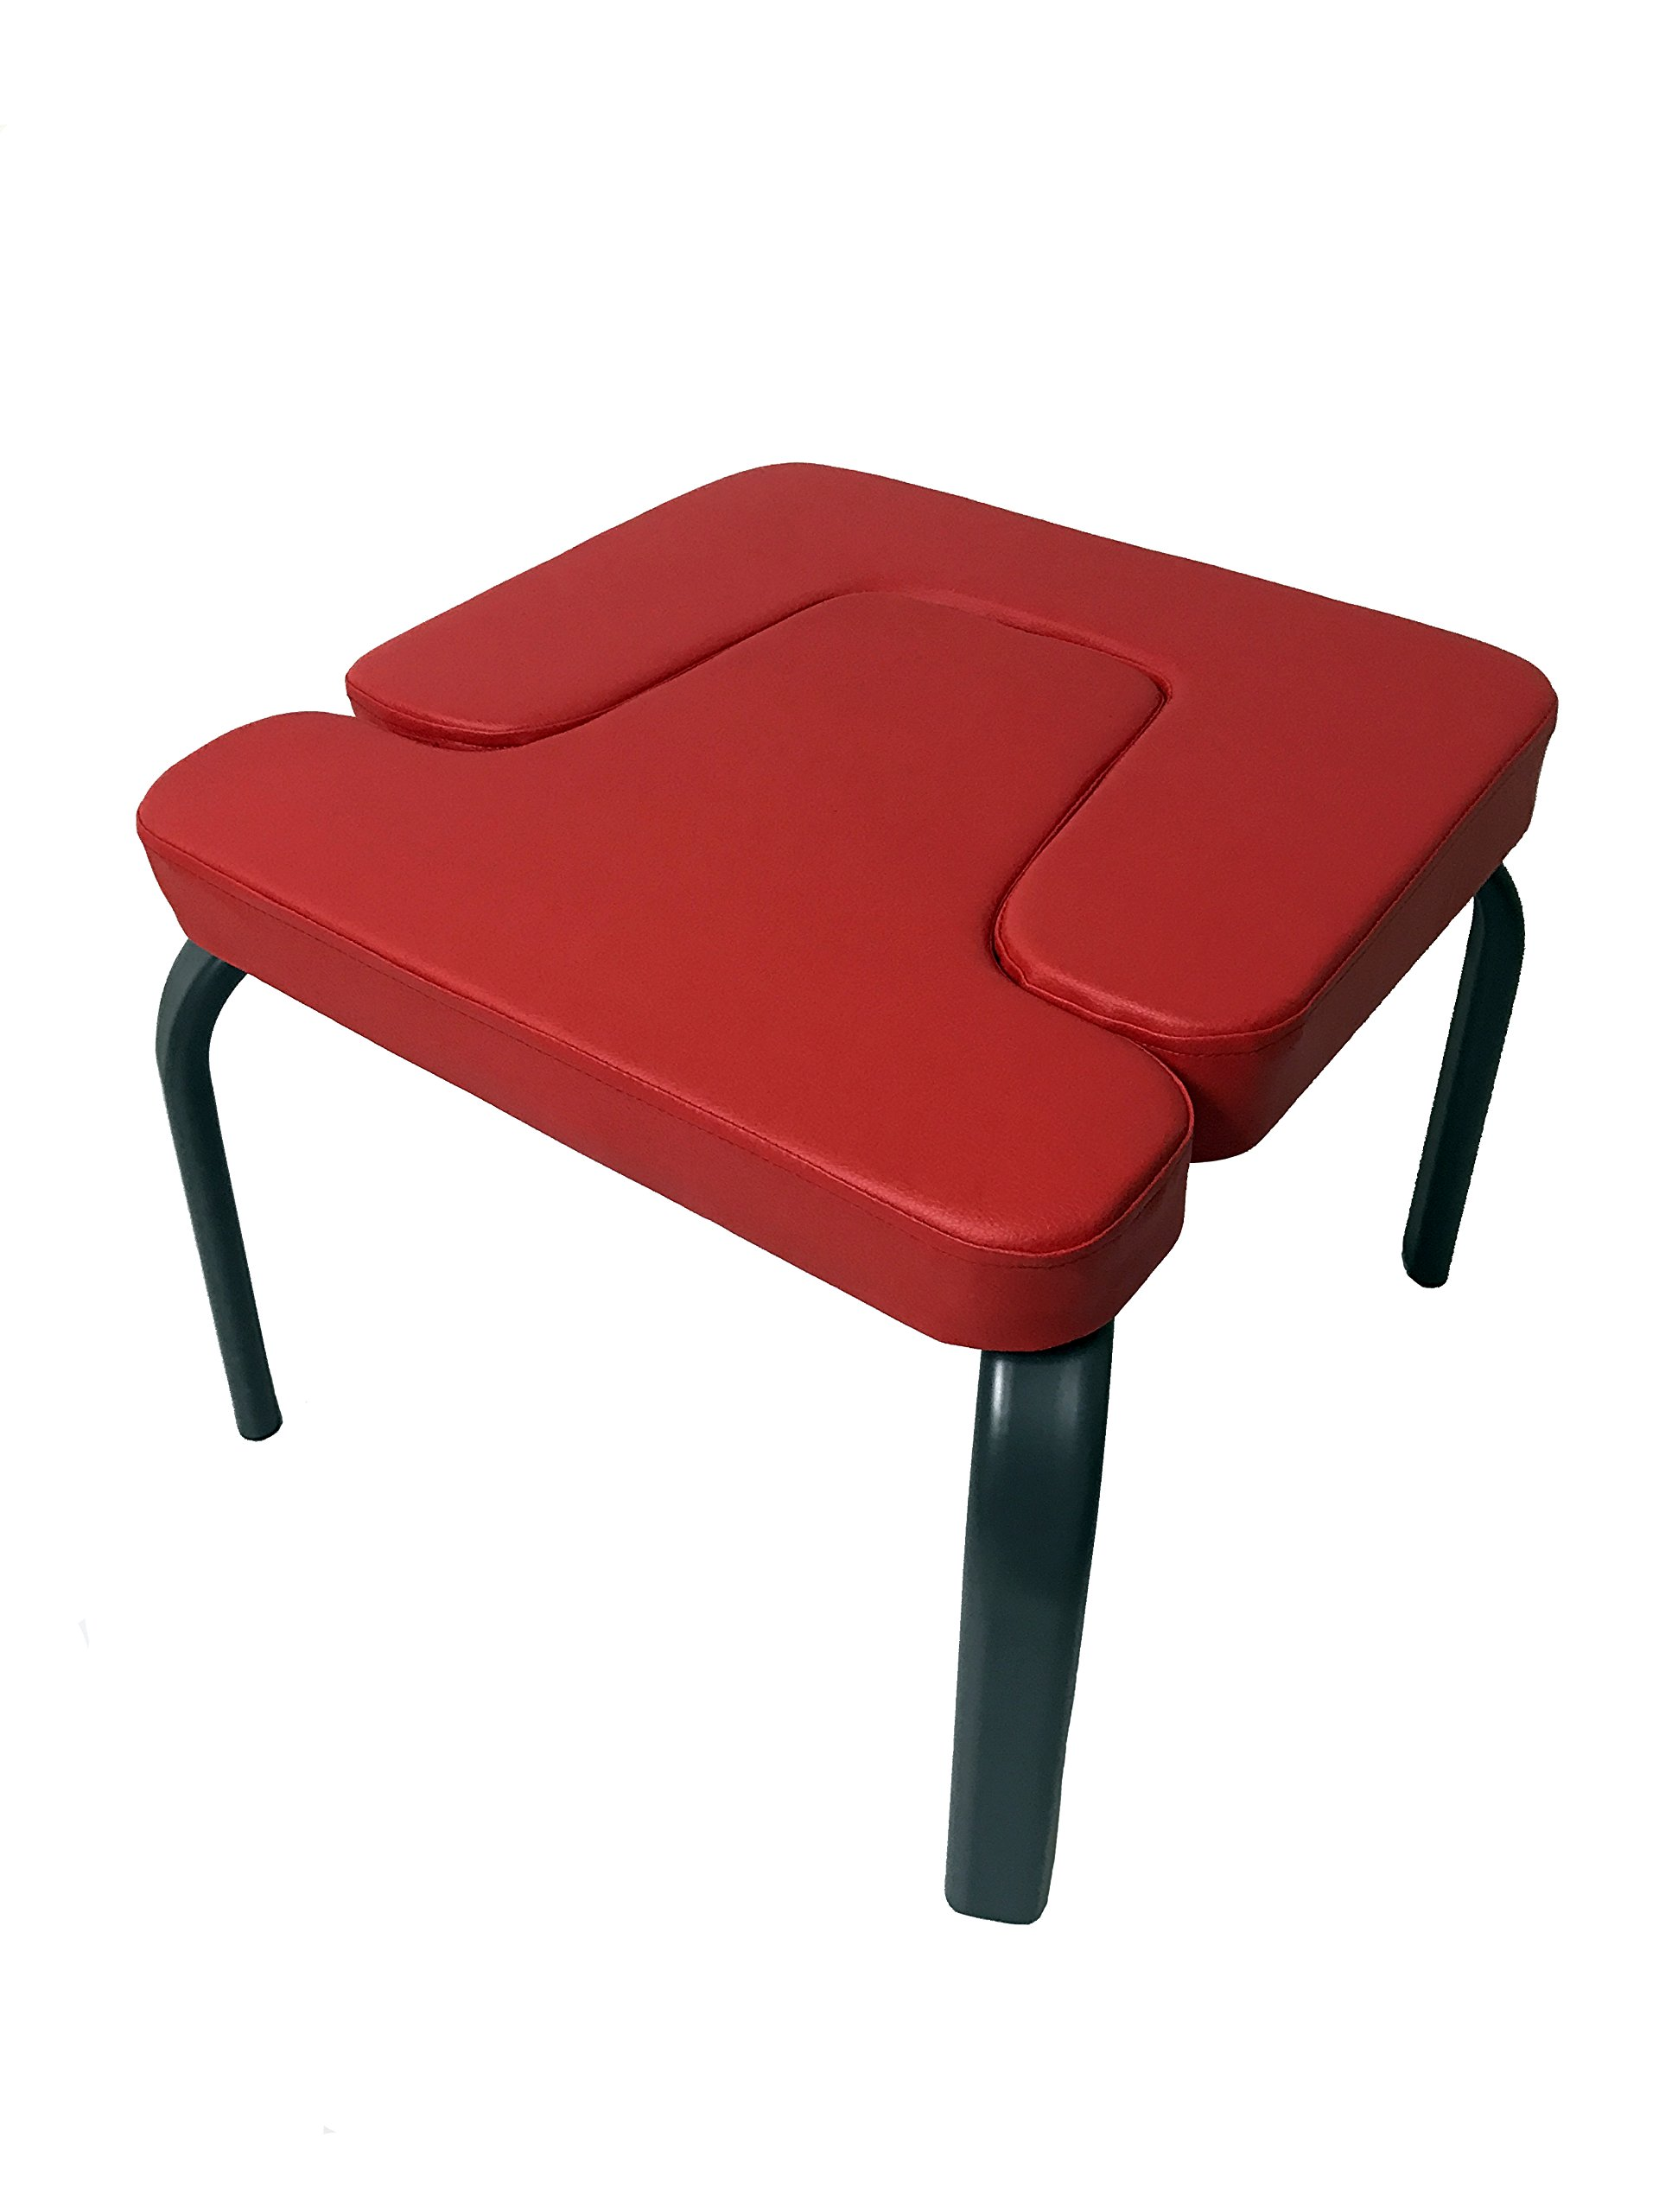 Aozora Balanced Body Headstand Bench- Ideal Chair for Practice Head Stand, Shoulderstand, Handstand and Various Yoga Poses. | Perfect for Both Beginner and Experience Yogis (red)